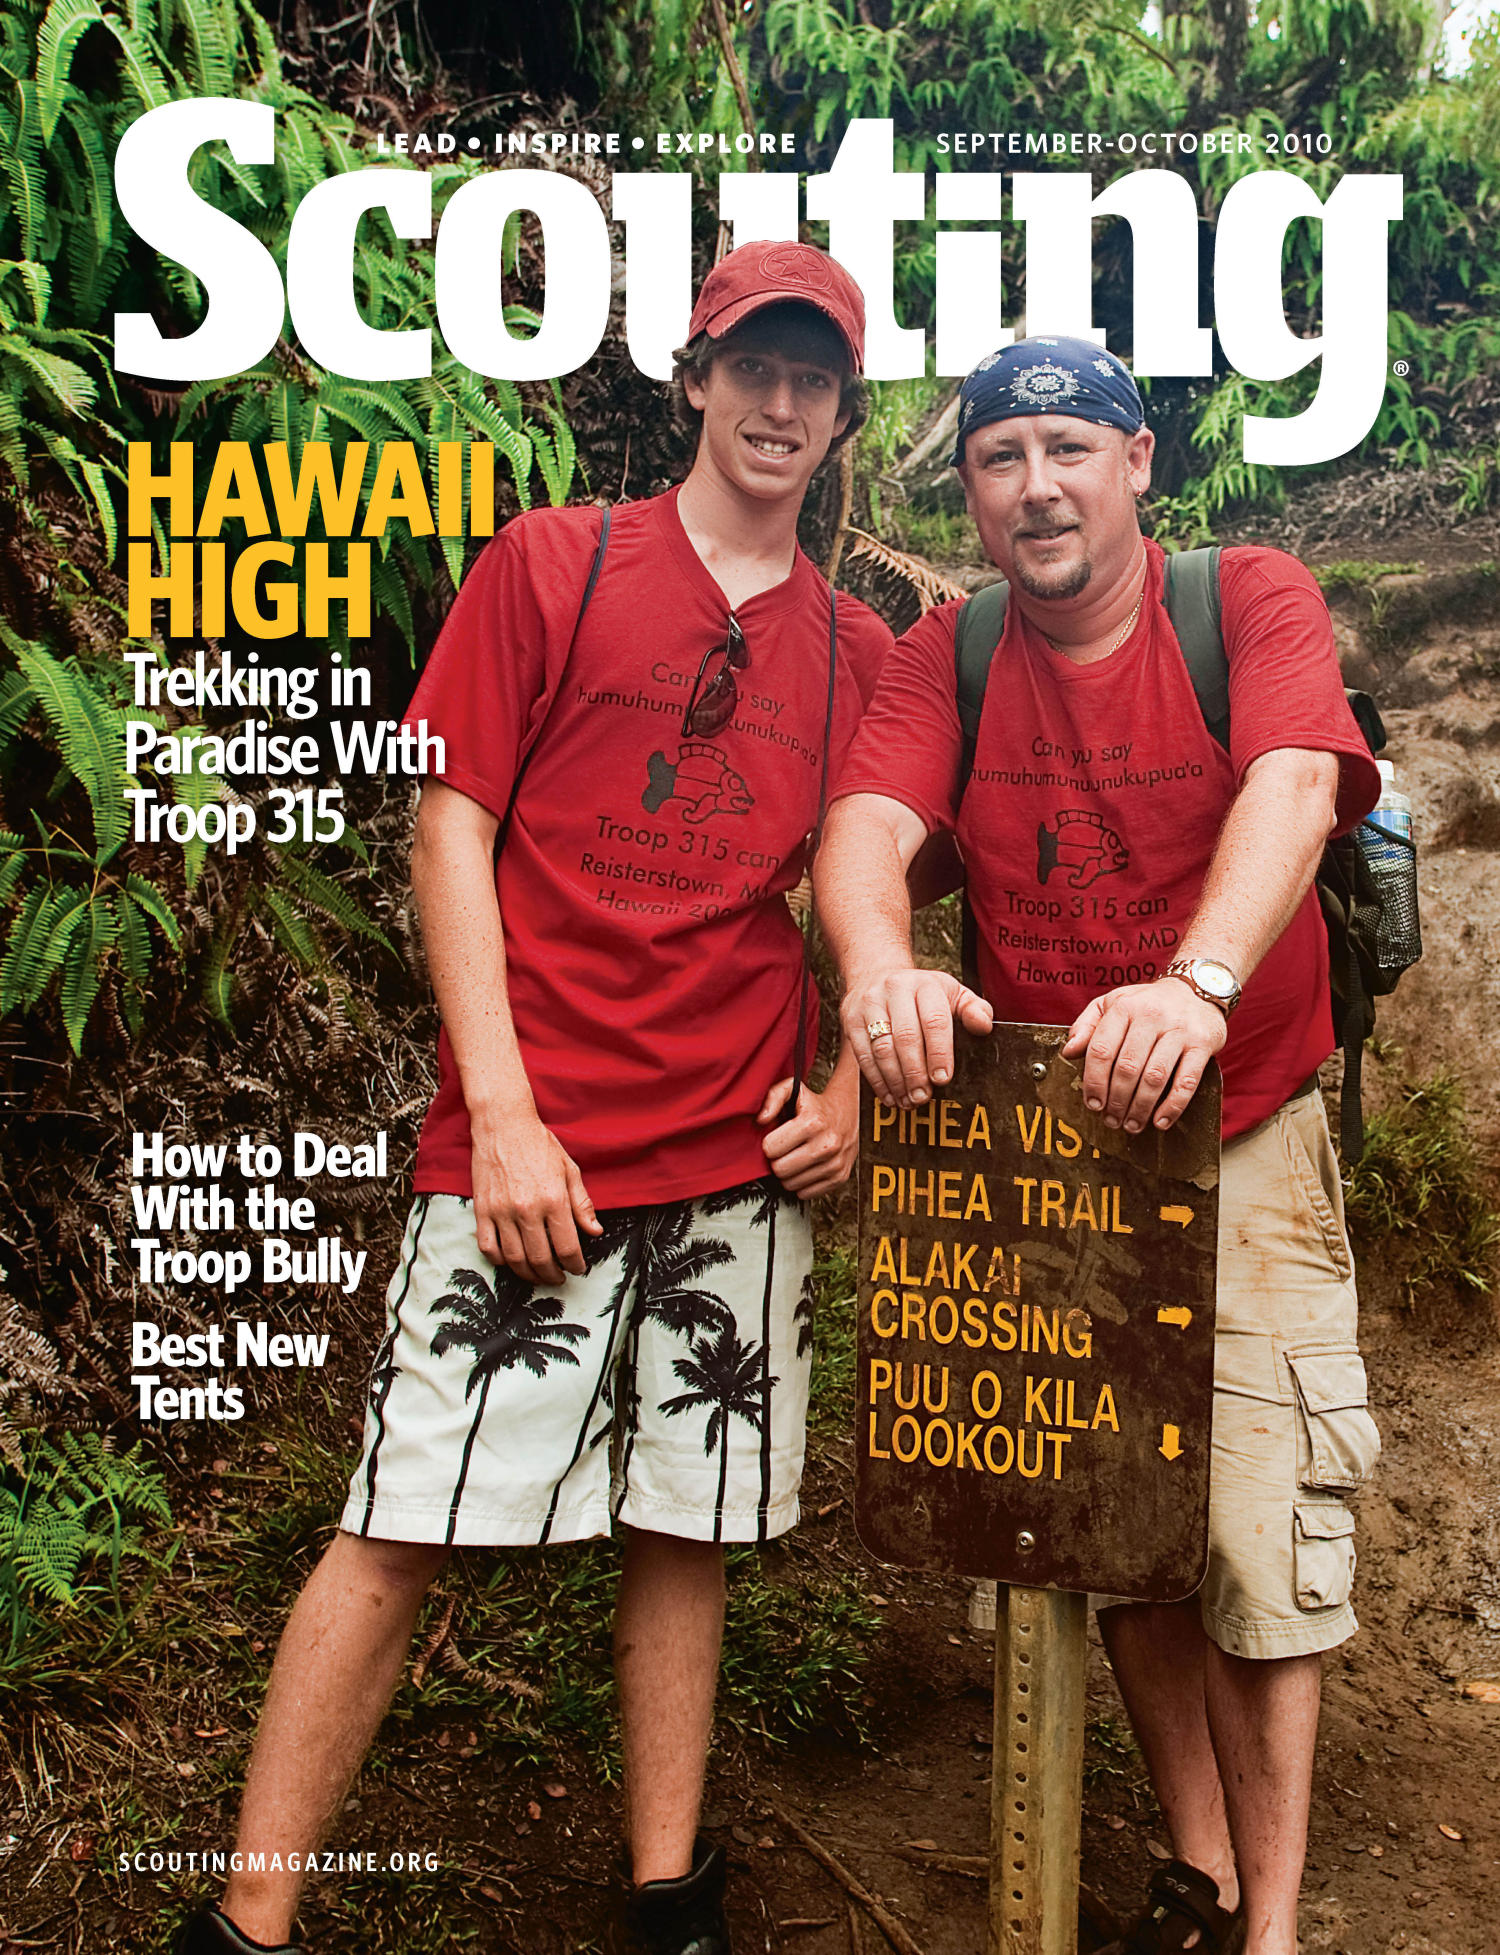 Scouting, Volume 98, Number 4, September-October 2010                                                                                                      Front Cover